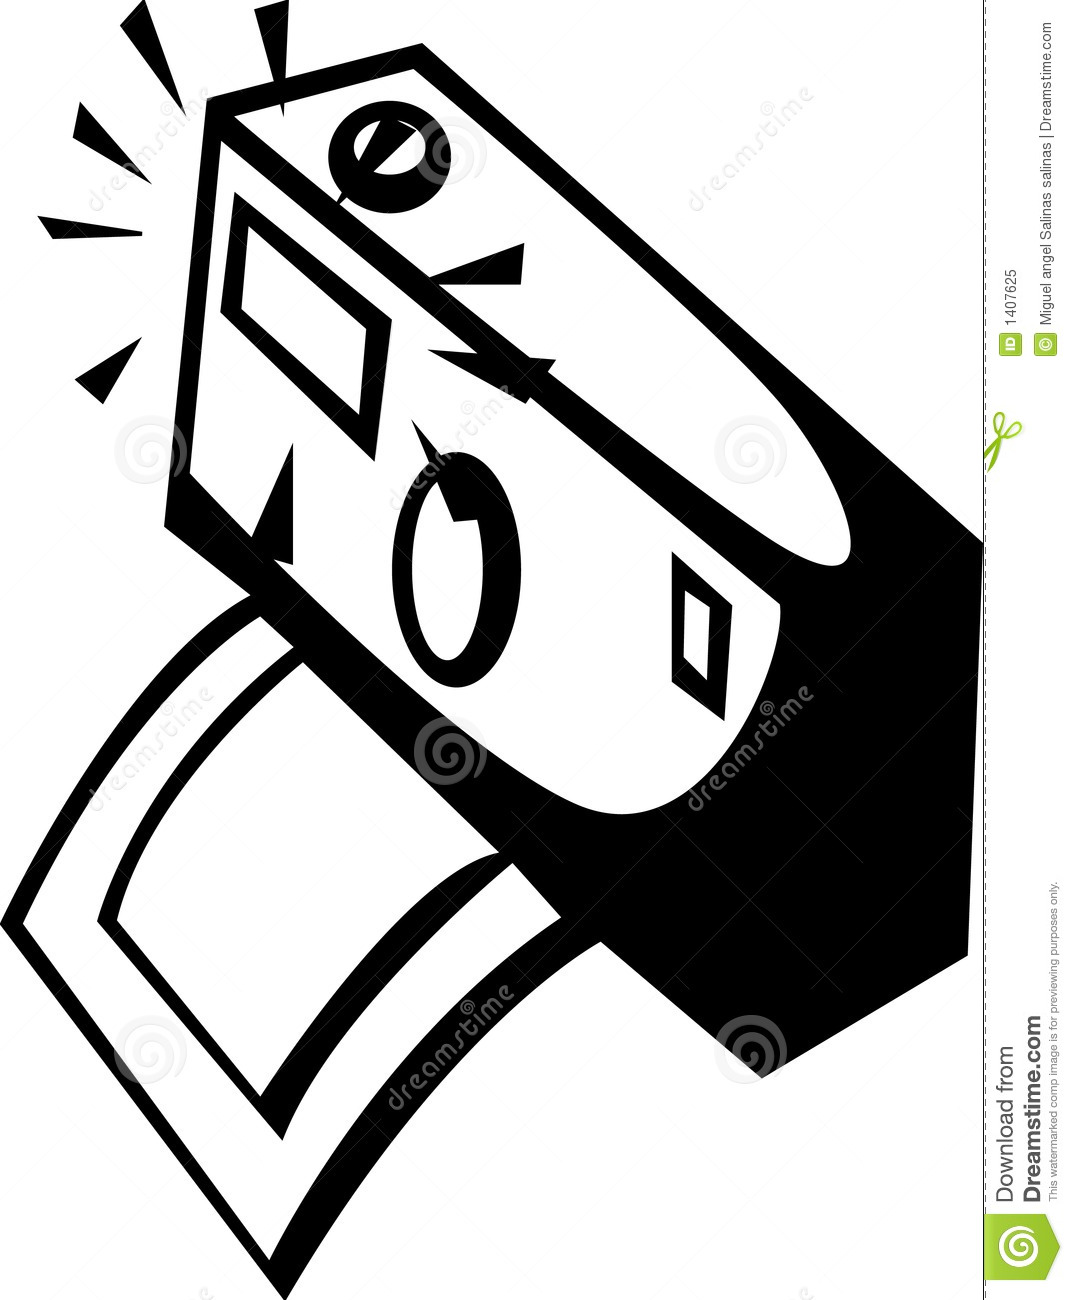 Flashing camera clip art svg free library Instantaneous Photo Camera With Flash Vector Royalty Free Stock ... svg free library